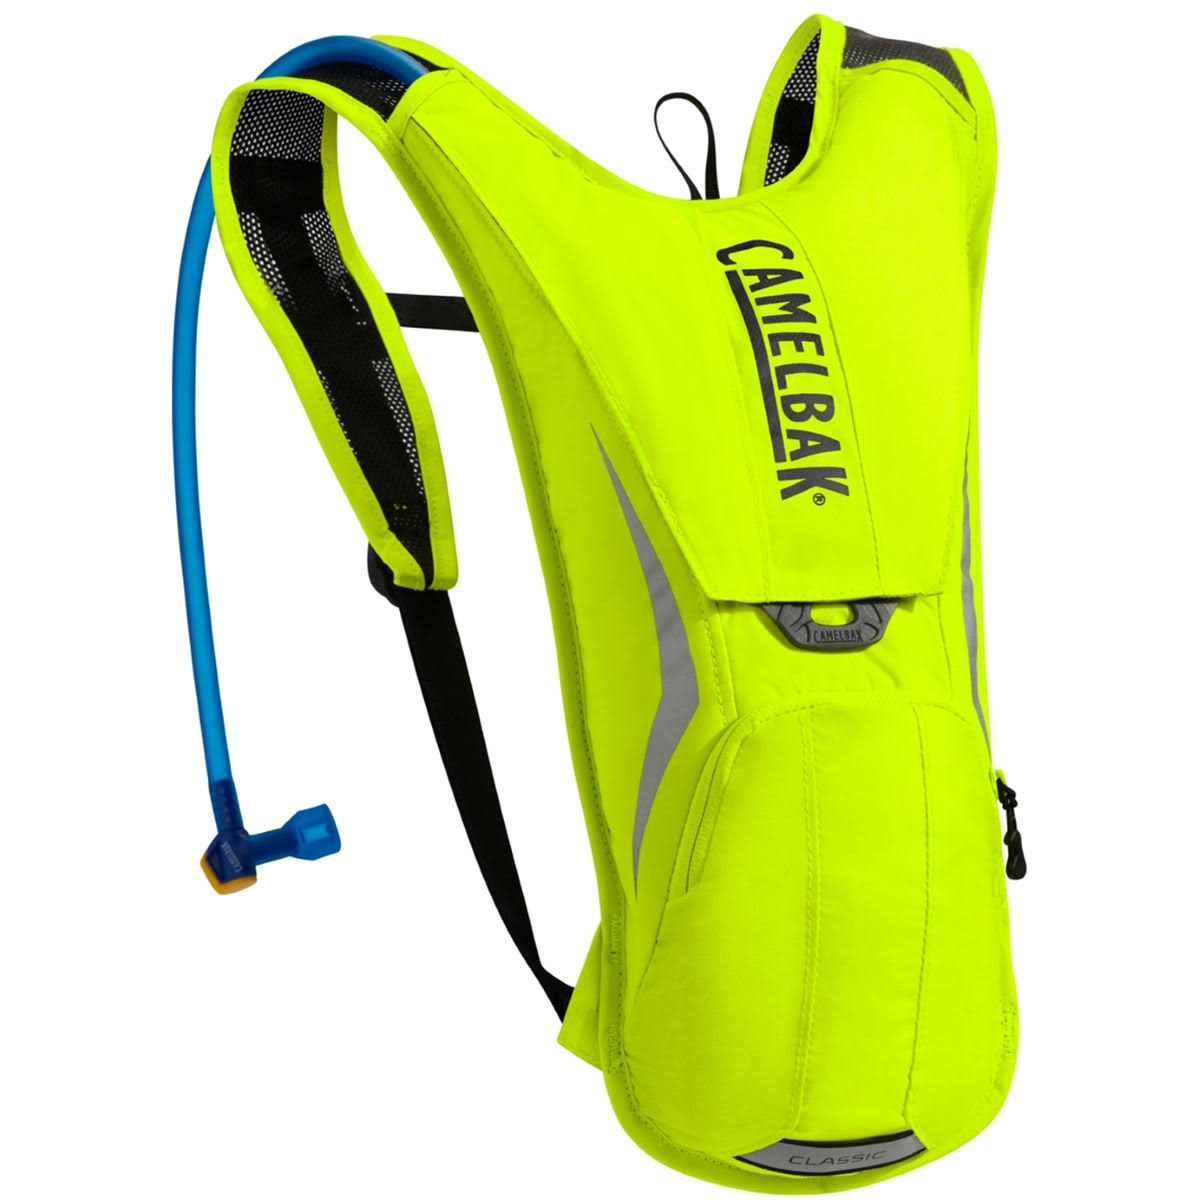 Camelbak Classic Hydration Pack - Lemon Green, 70oz